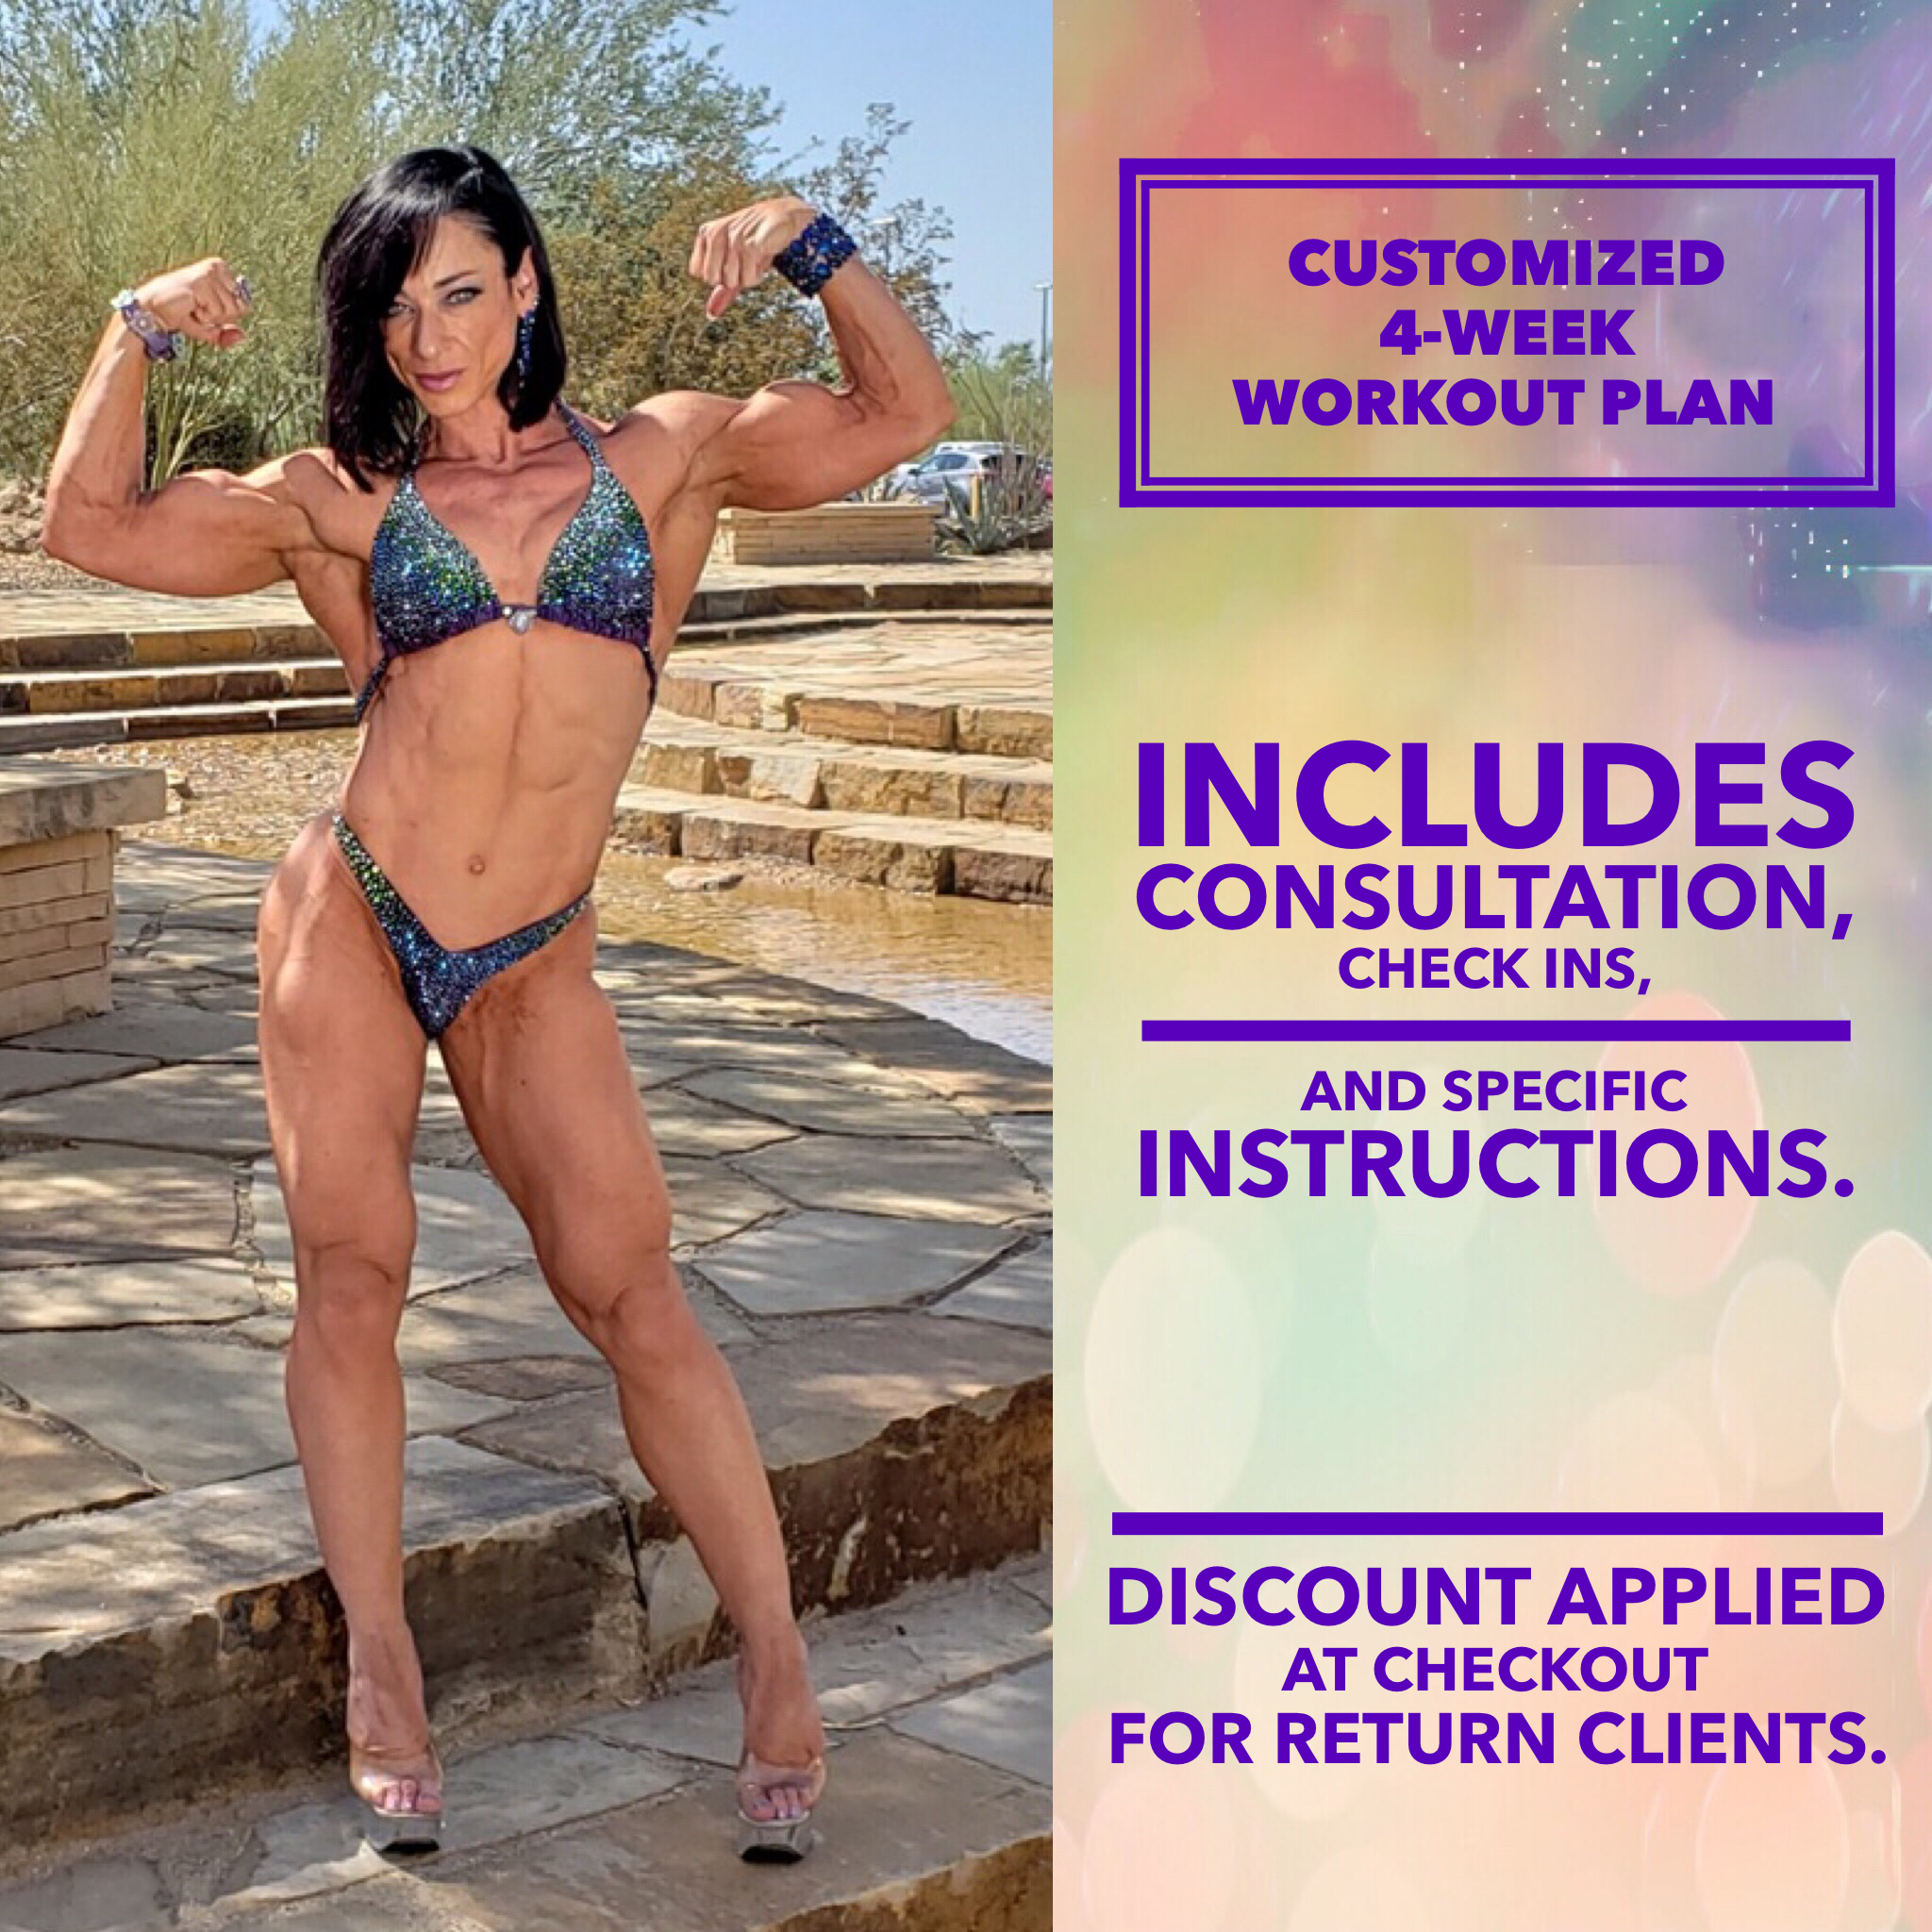 Customized, 4-Week Workout Plan with Face-to-Face (Online) Consultation, Check Ins, and Specific Instructions 00001